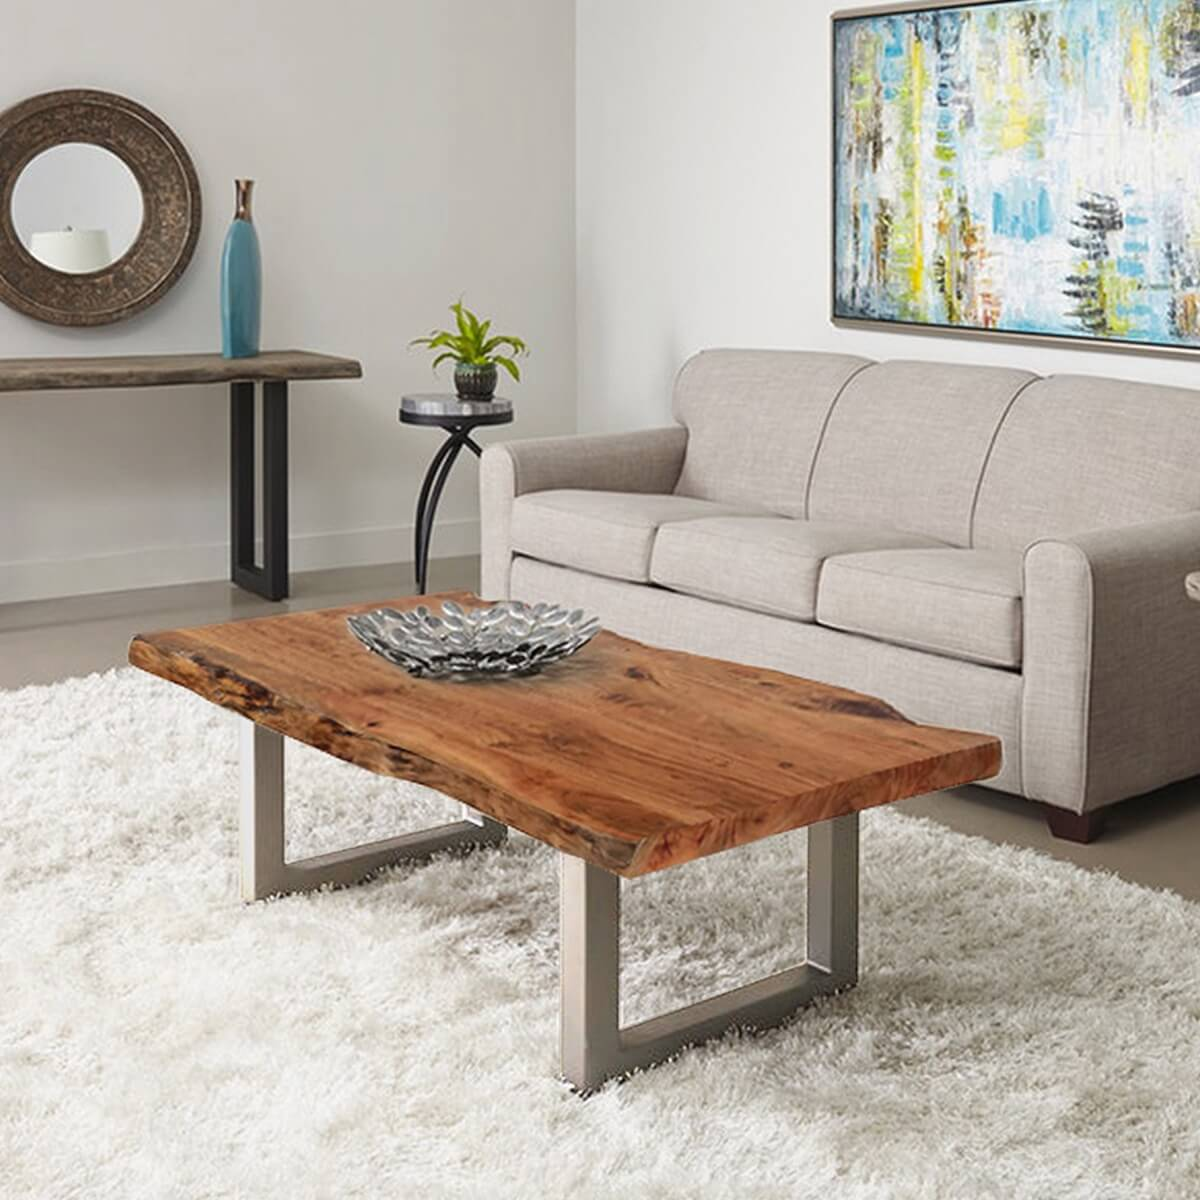 natural acacia wood steel rustic live edge coffee table